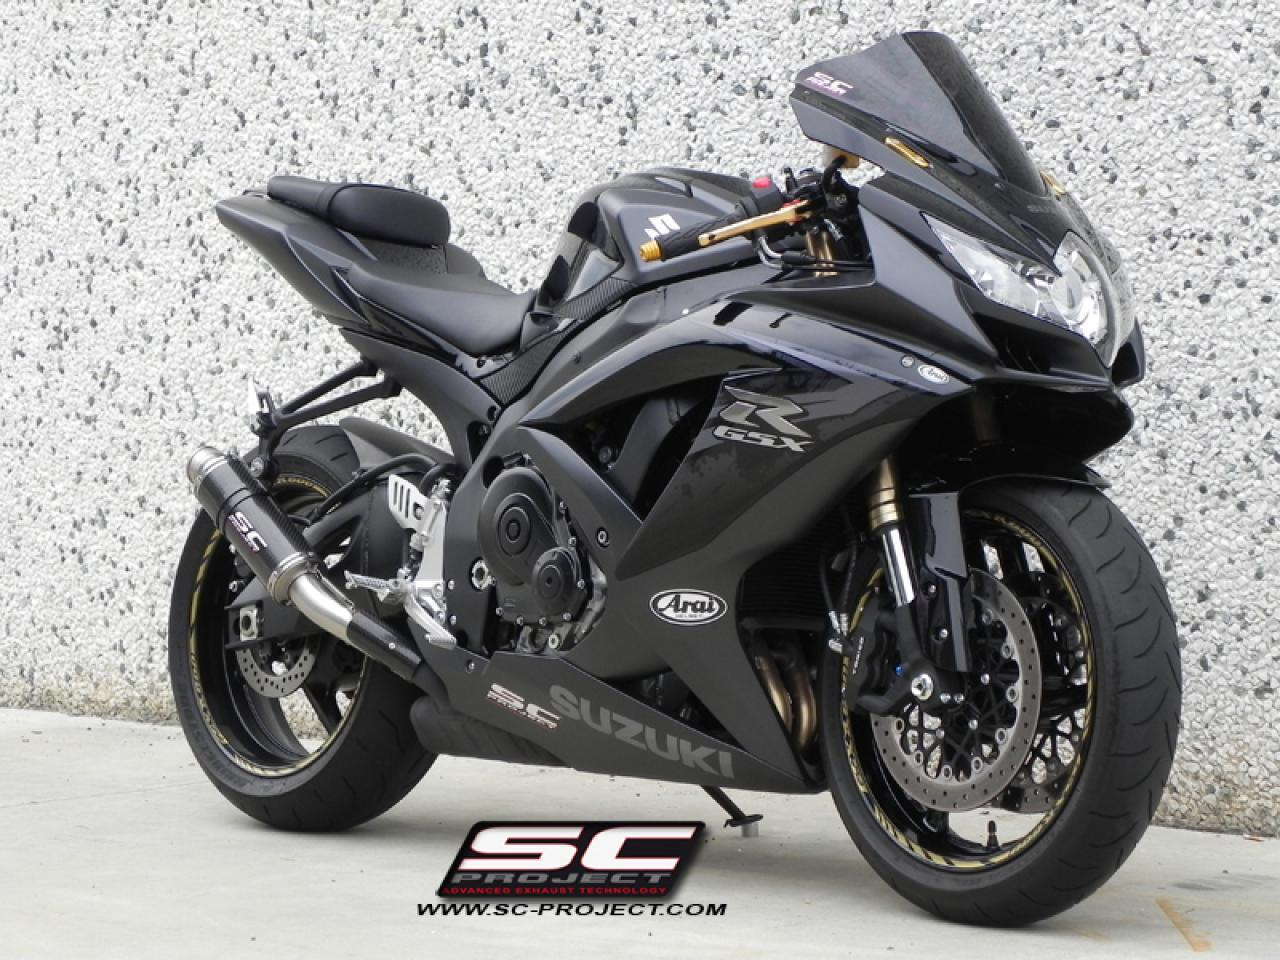 suzuki suzuki gsx r 600 moto zombdrive com. Black Bedroom Furniture Sets. Home Design Ideas